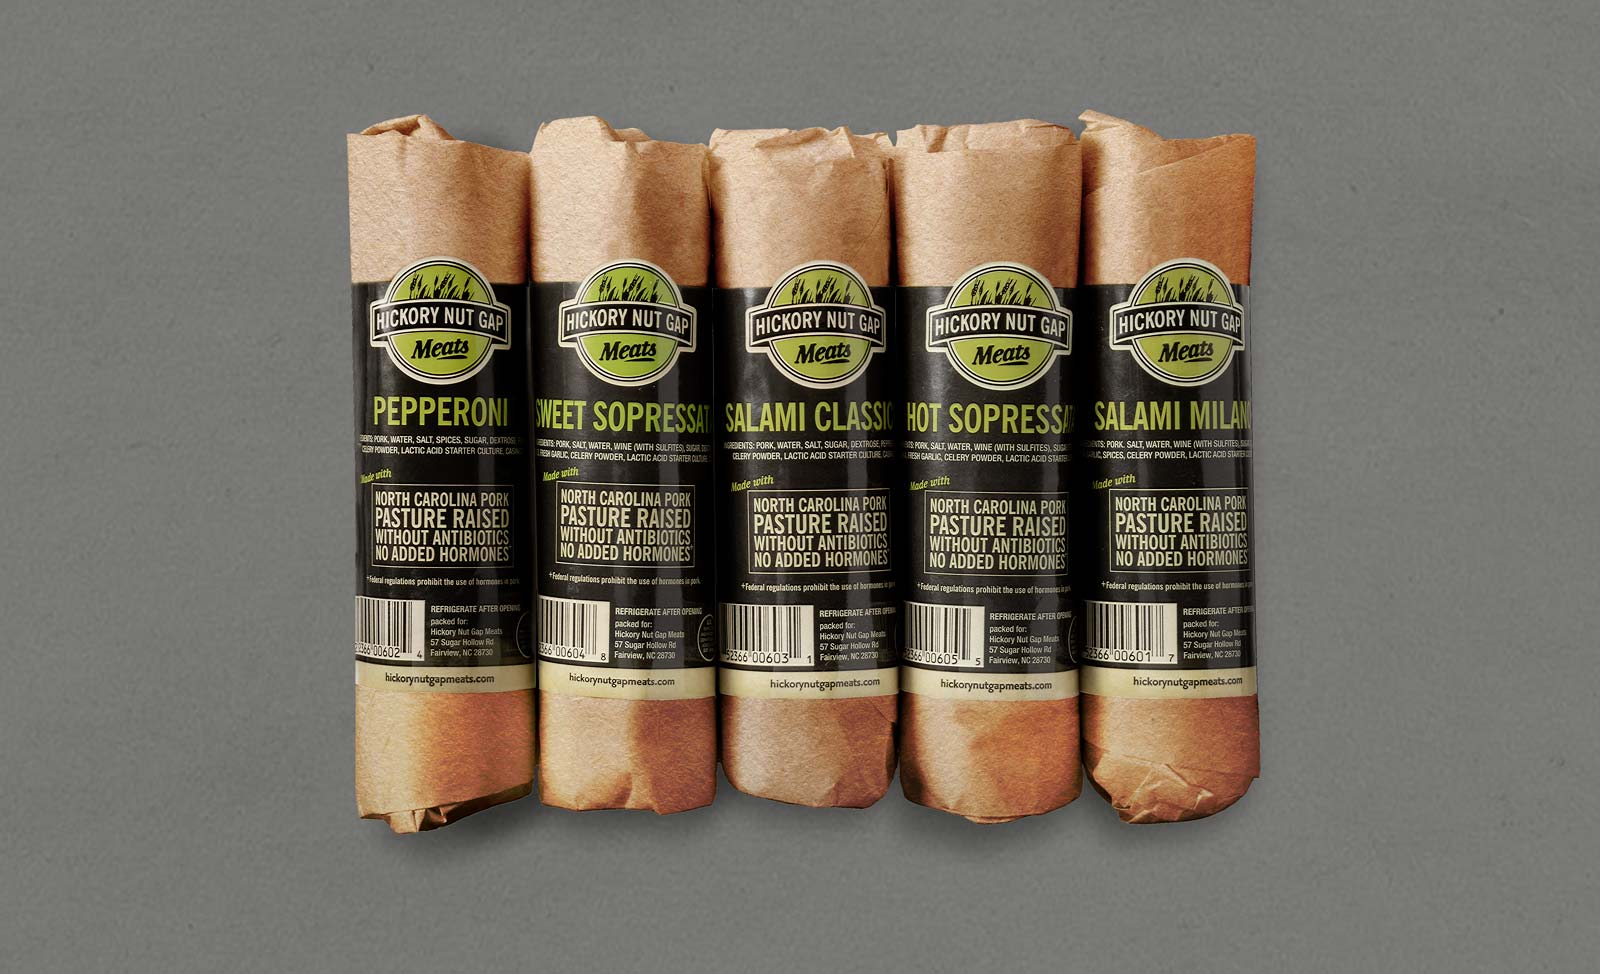 Hickory Nut Gap cured meats labels wrapped around kraft paper on gray background